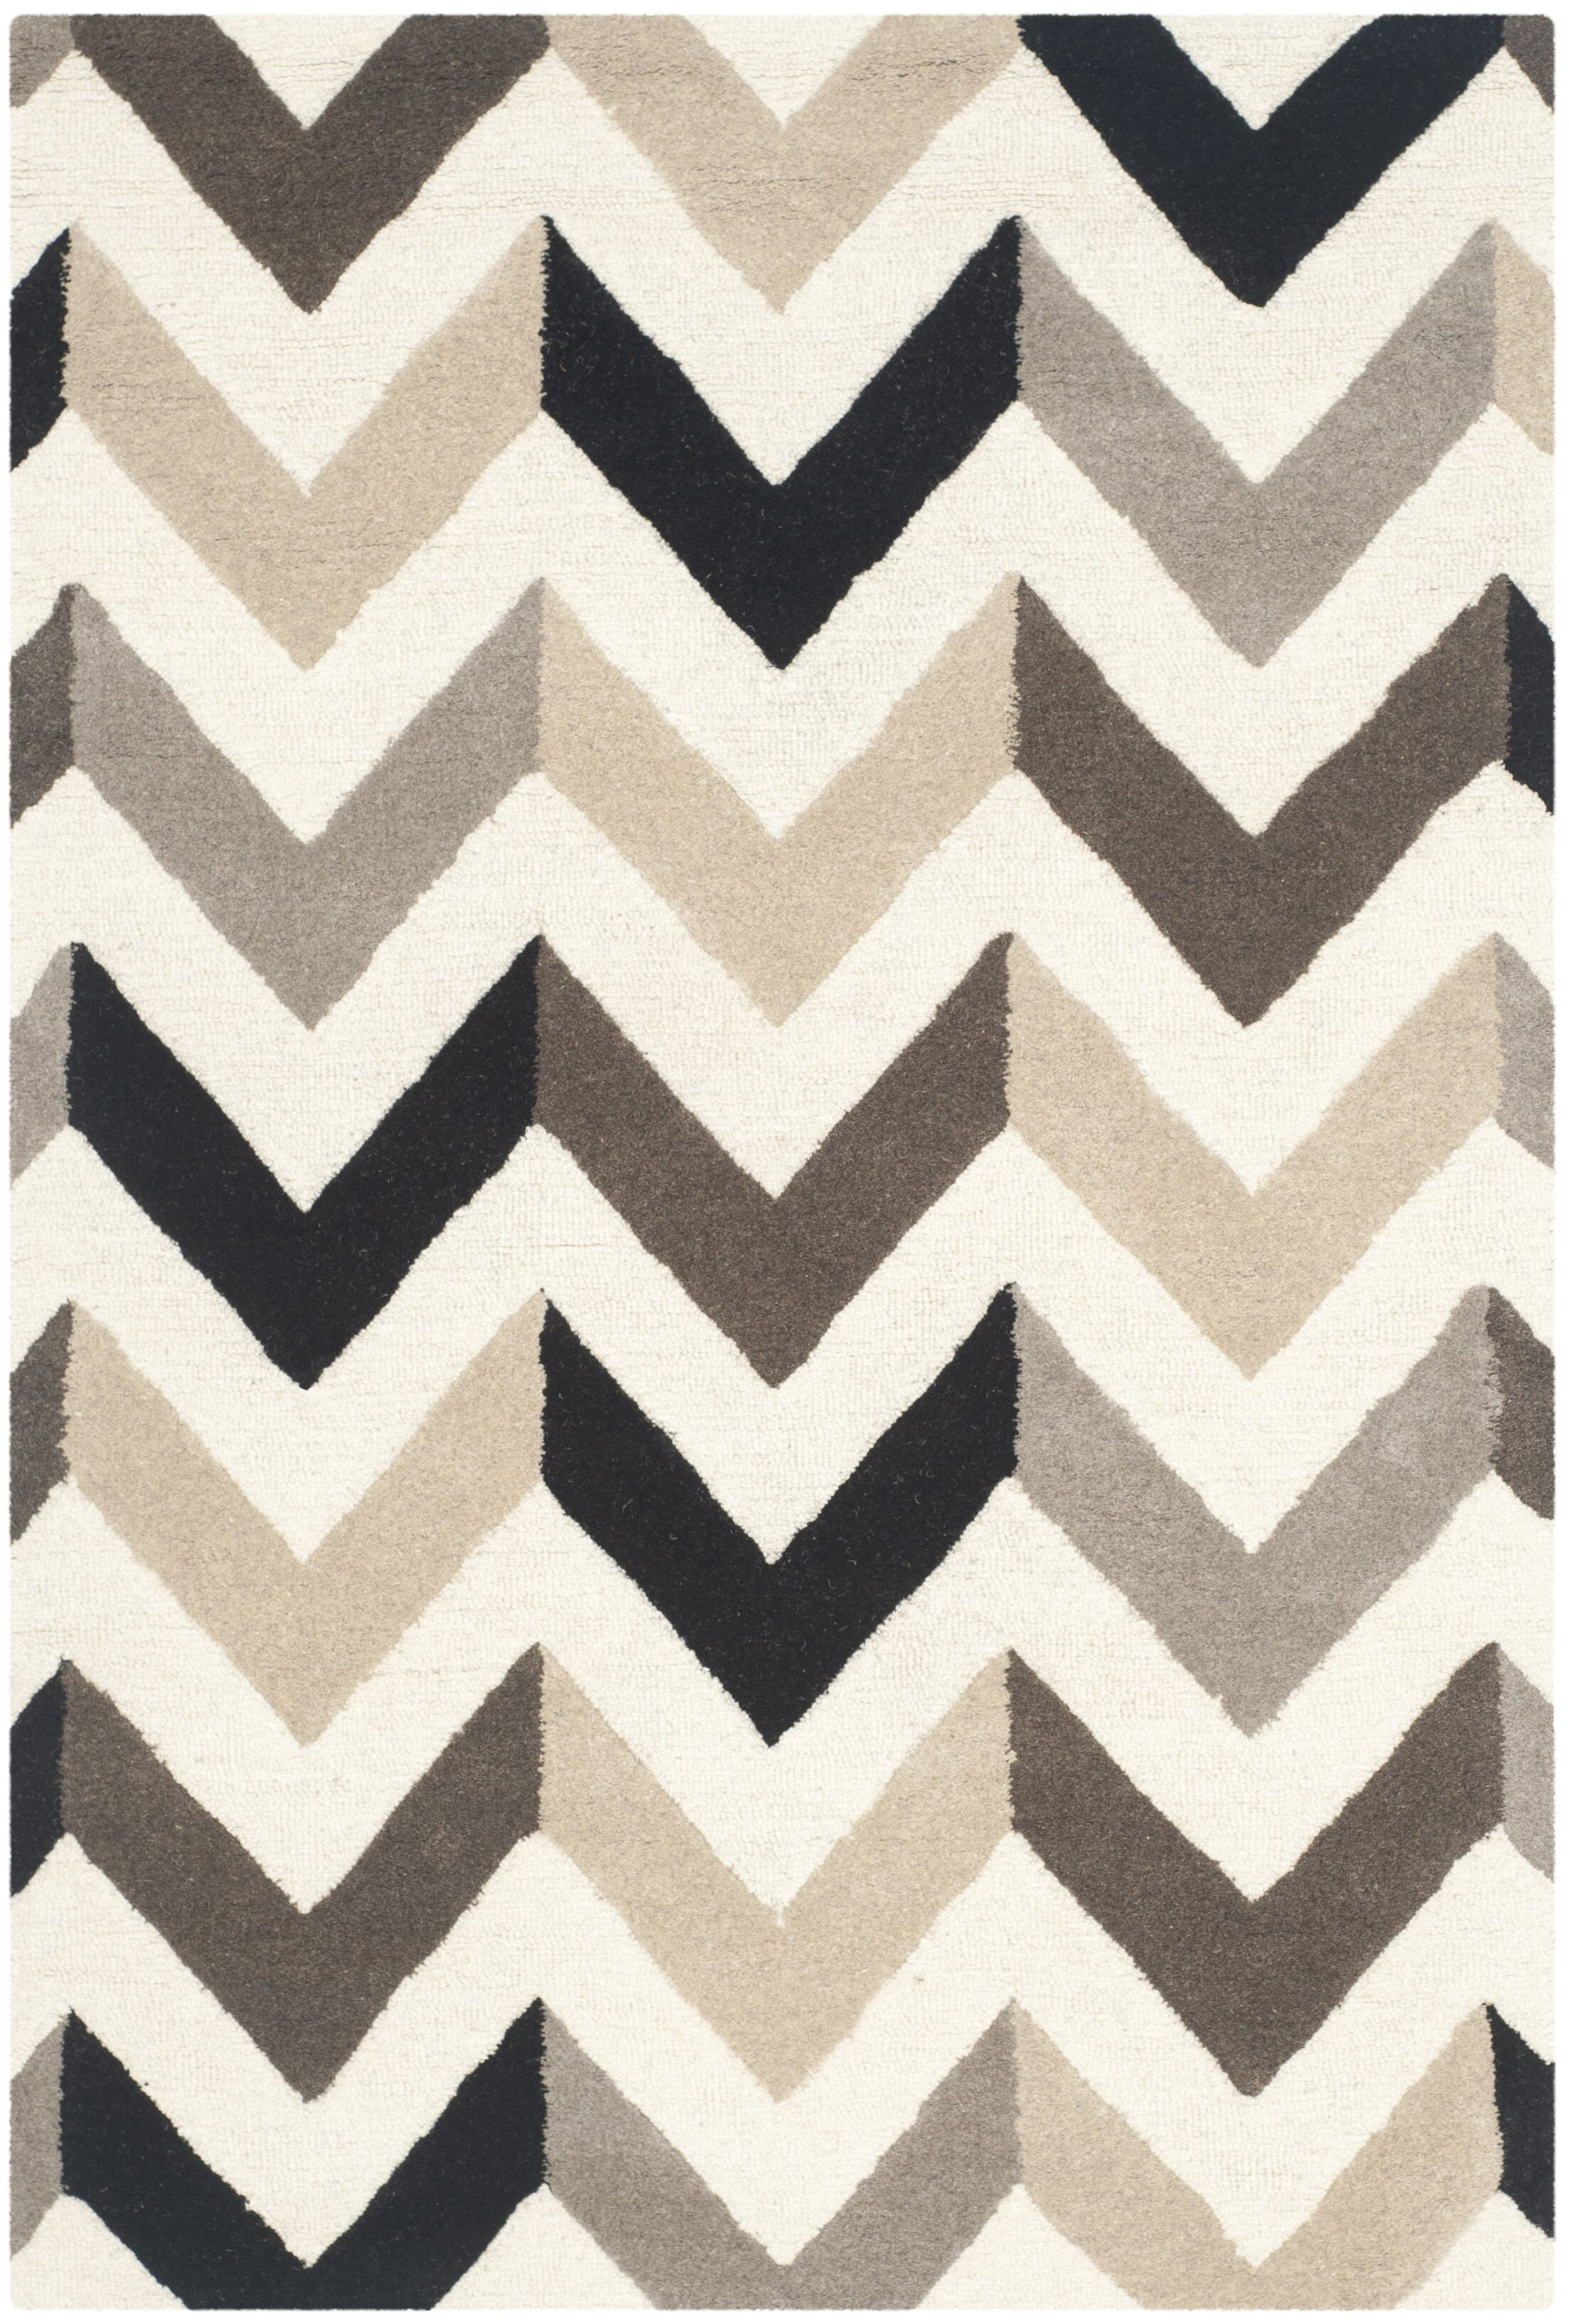 Obrian Hand-Tufted Ivory/Black Area Rug Rug Size: Rectangle 4' x 6'